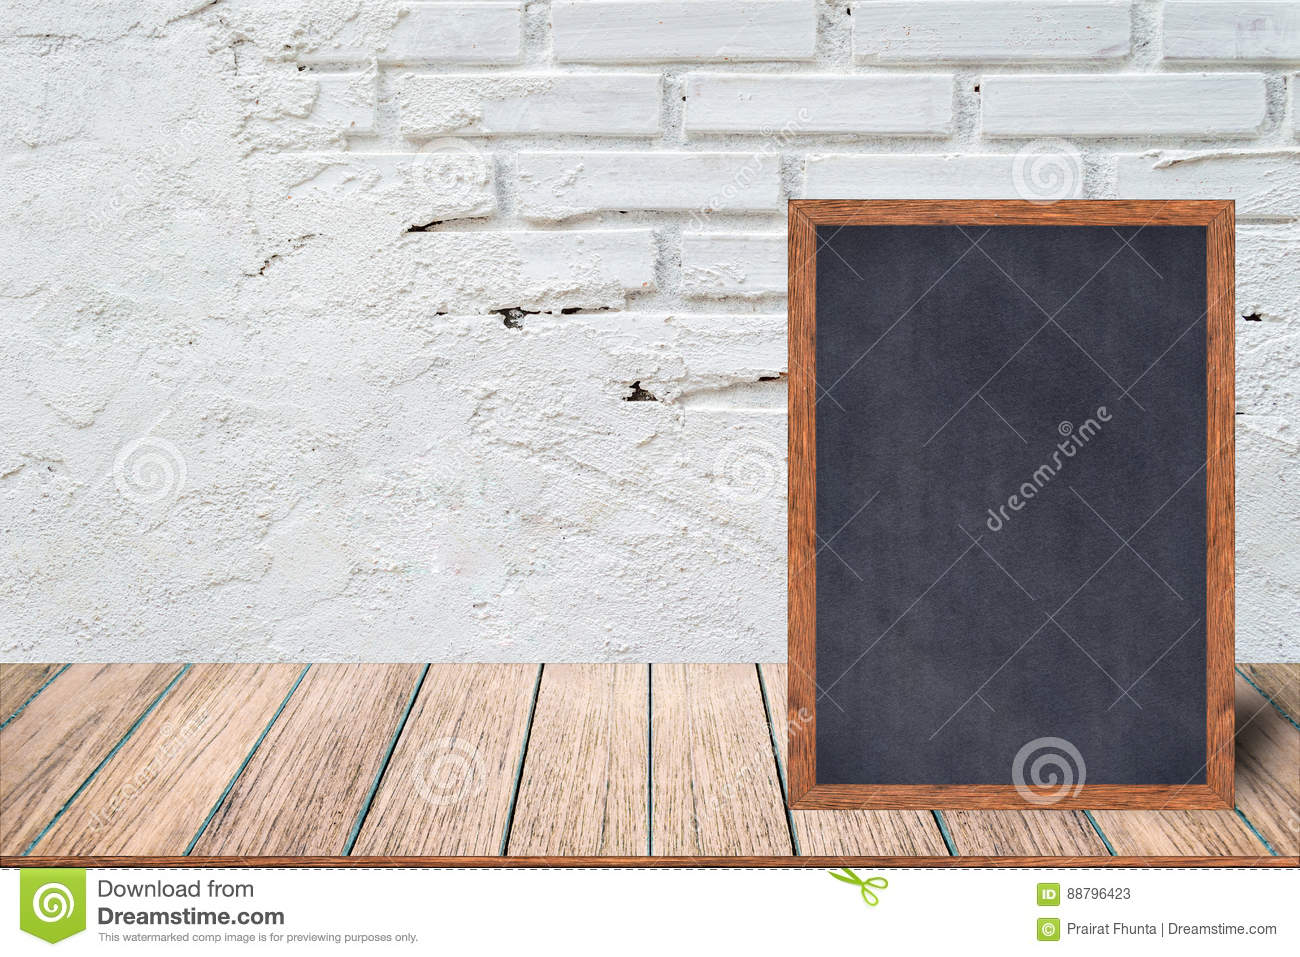 Chalkboard wood frame, blackboard sign menu on wooden table and with brick background.